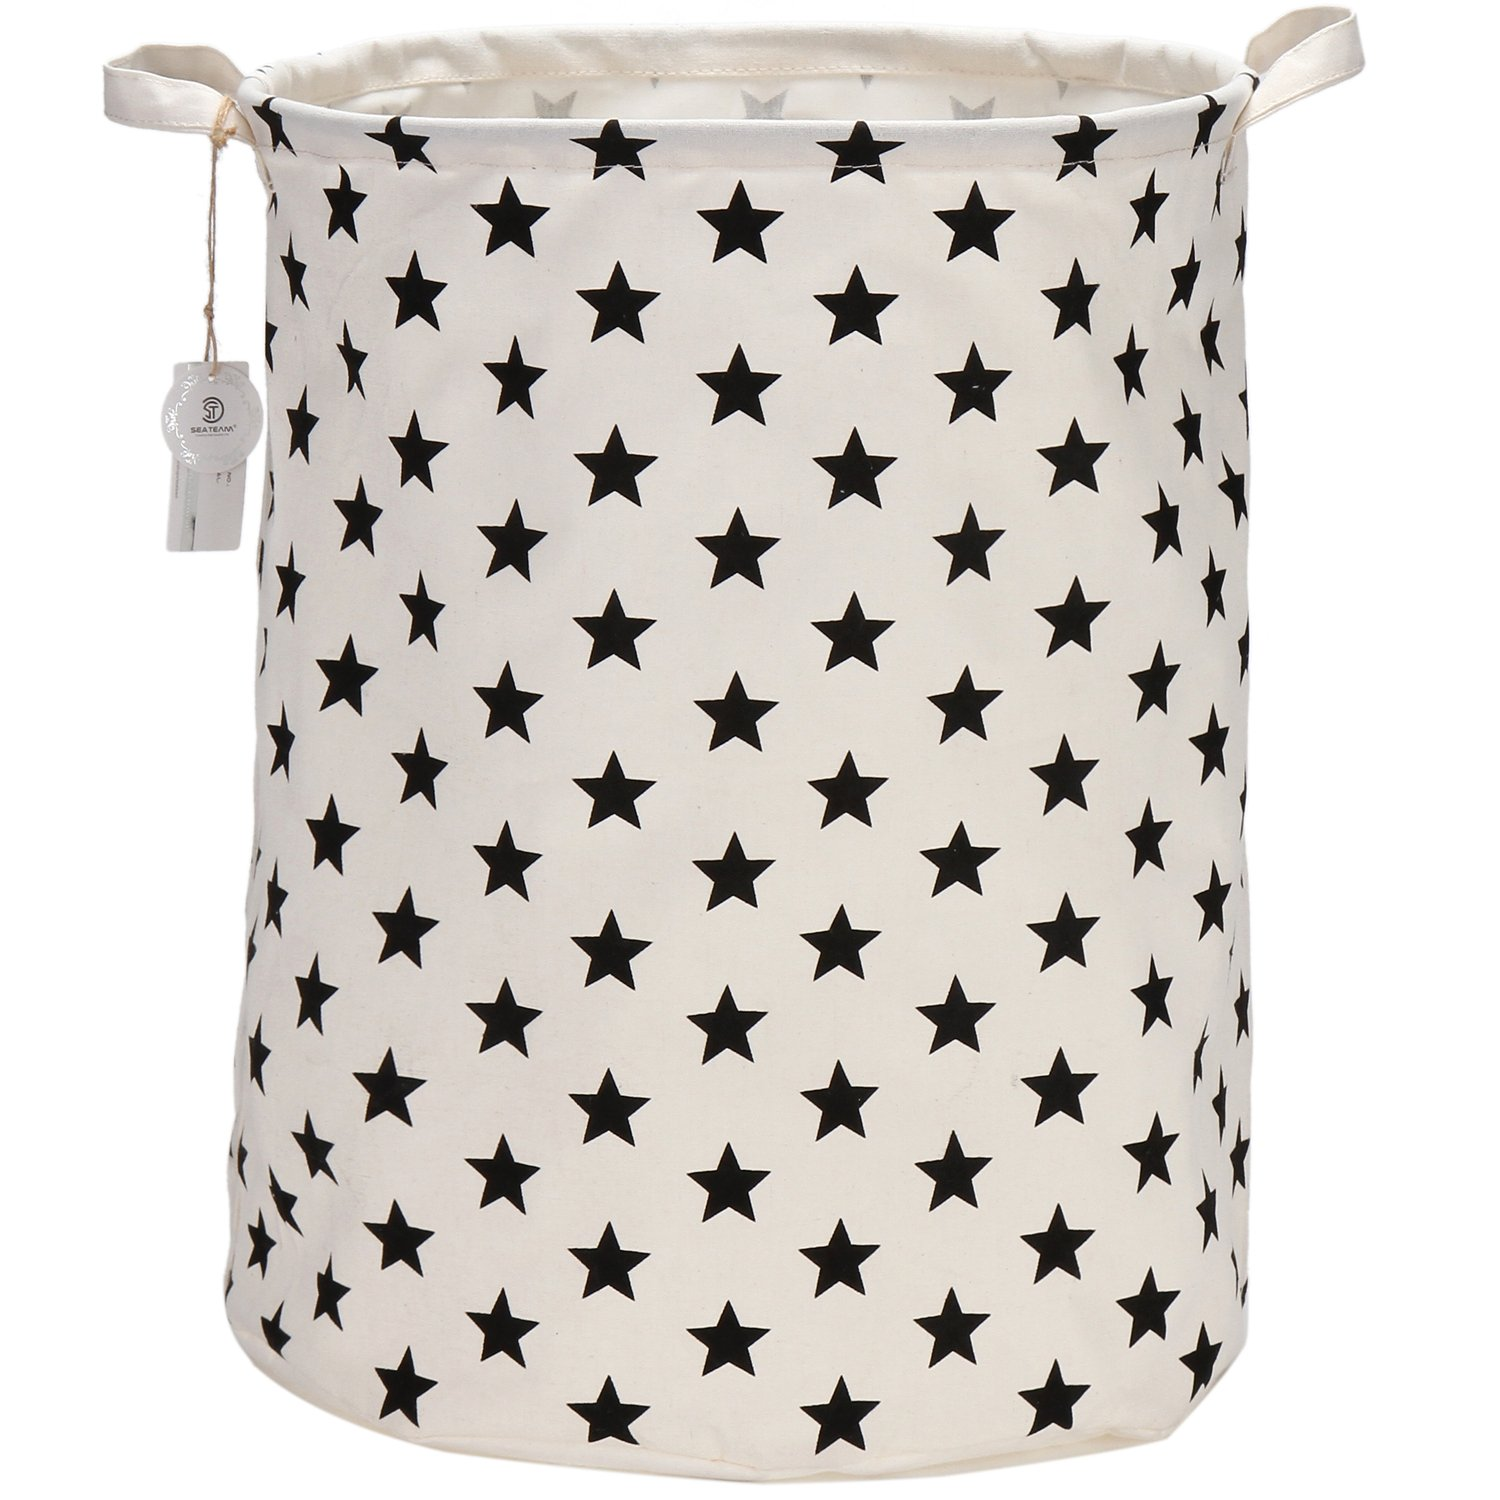 "Sea Team 19.7"" Large Sized Waterproof Coating Ramie Cotton Fabric Folding Laundry Hamper Bucket Cylindric Burlap Canvas Storage Basket with Stylish Black Stars Design"